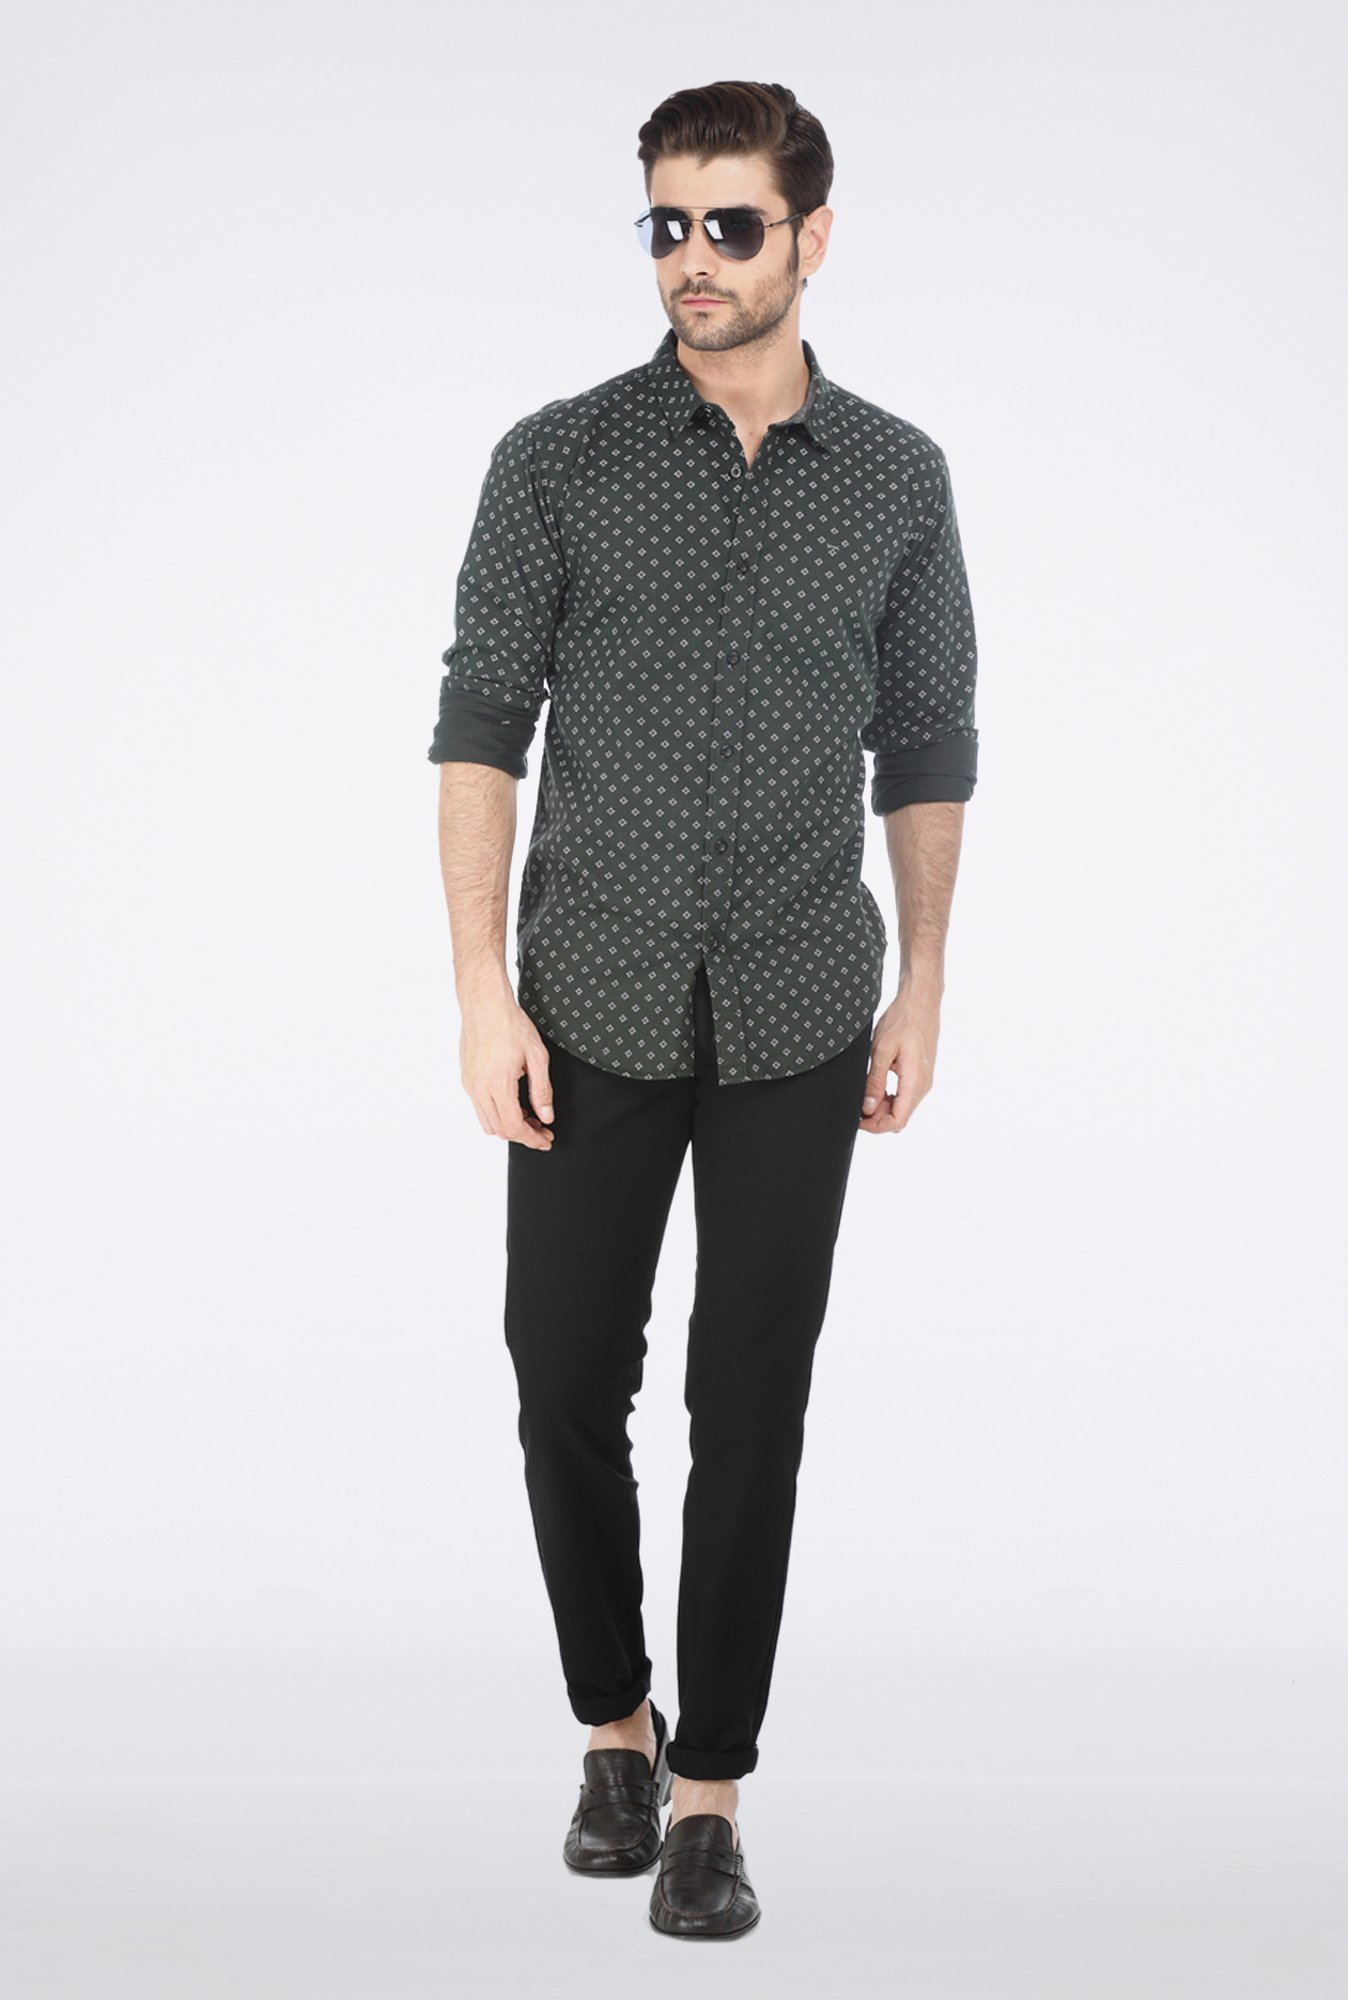 Basics Green Motif Printed Shirt